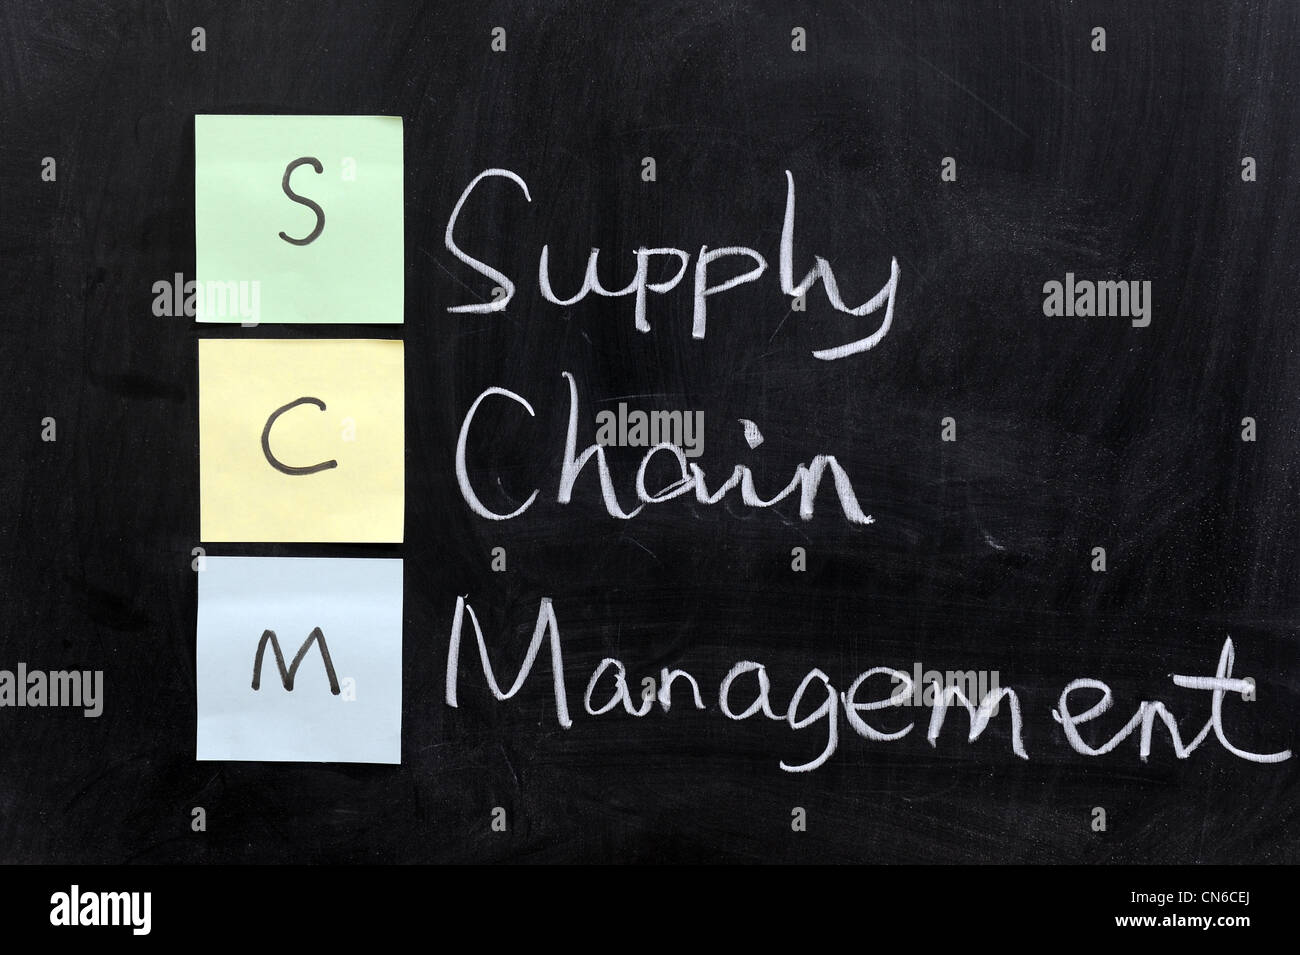 Chalk drawing - SCM, supply chain management Stock Photo